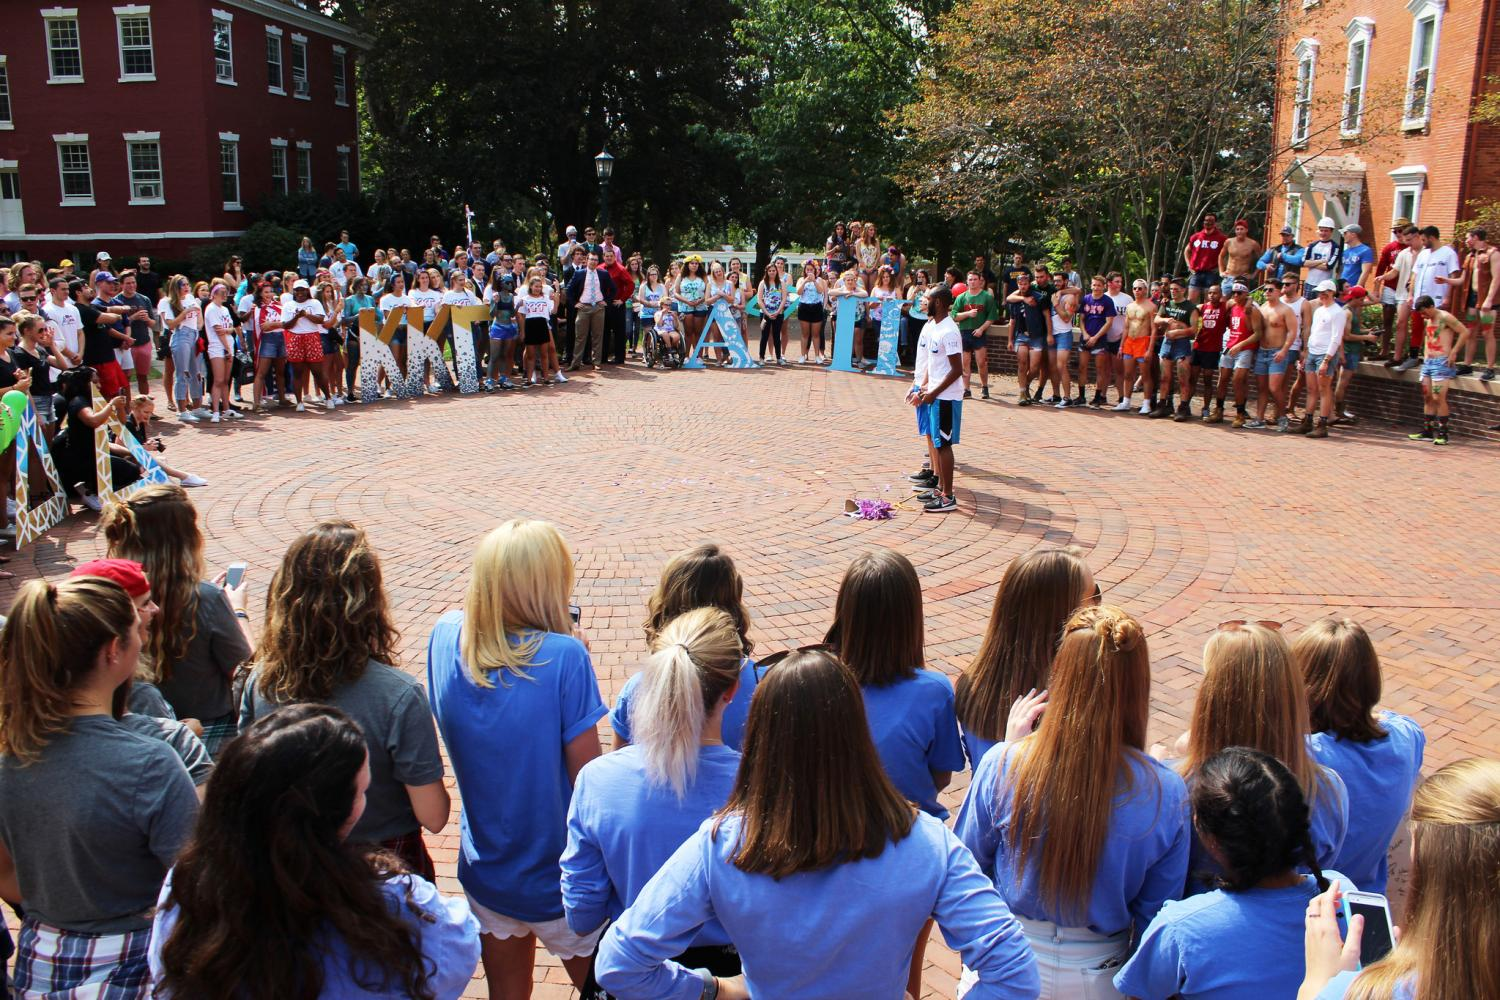 The+college+community+gathers+to+watch+the+brothers+of+Phi+Beta+Sigma.+